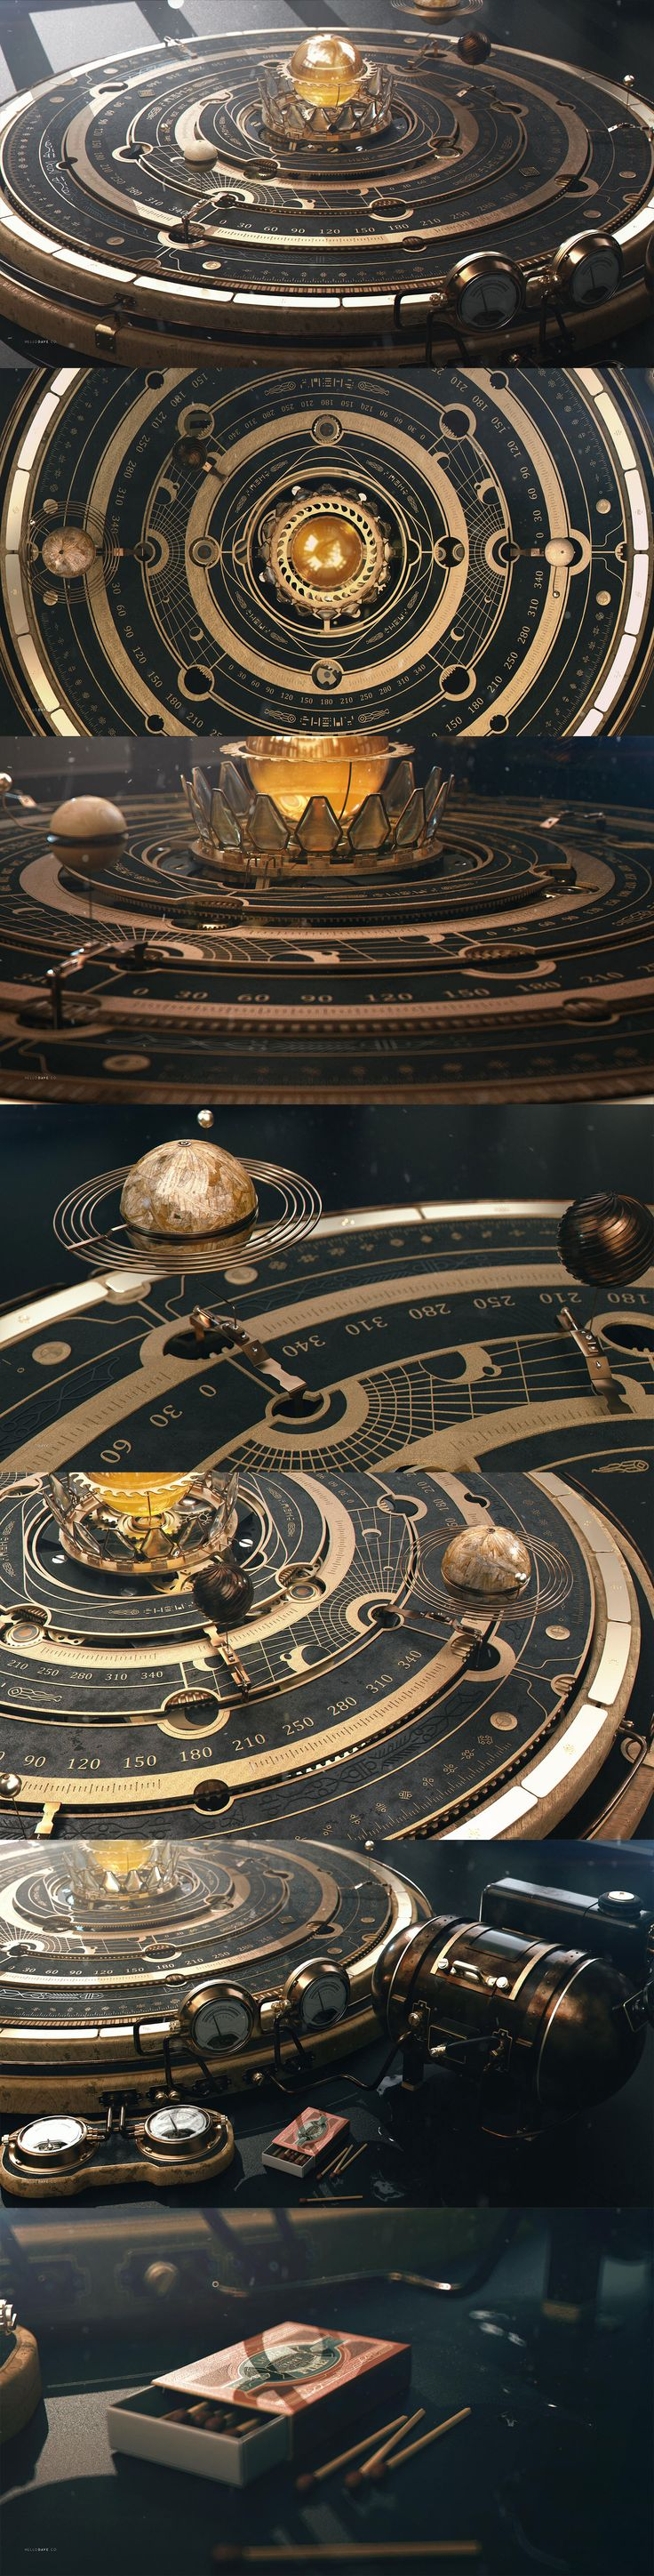 Style frames and boards steampunk Astrolabe Orrery Table by dchan